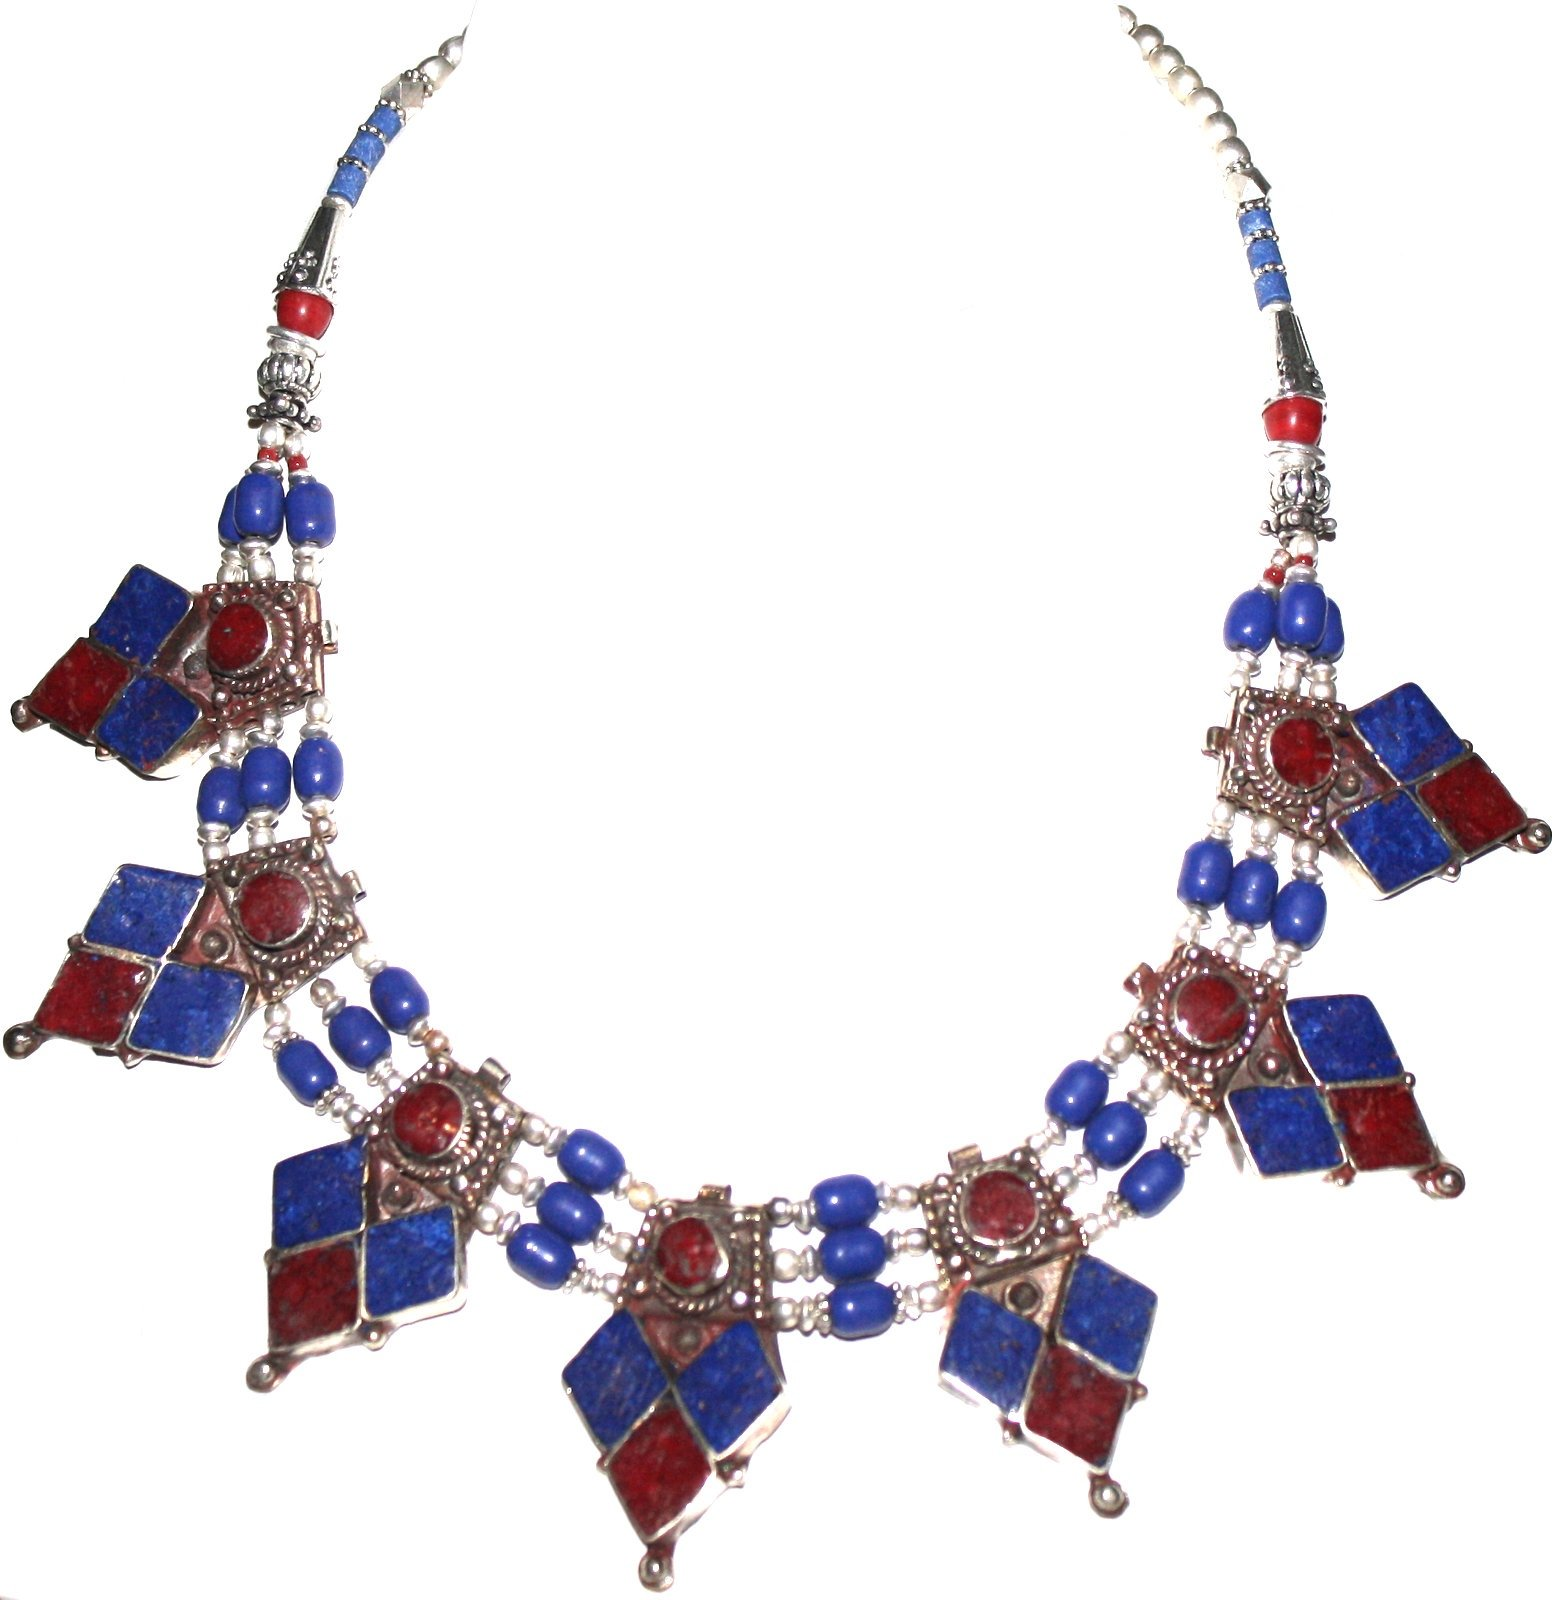 Coral Lapis Tibetan Necklace Known As Boho Necklace, Nepal Necklace, Gypsy Necklace